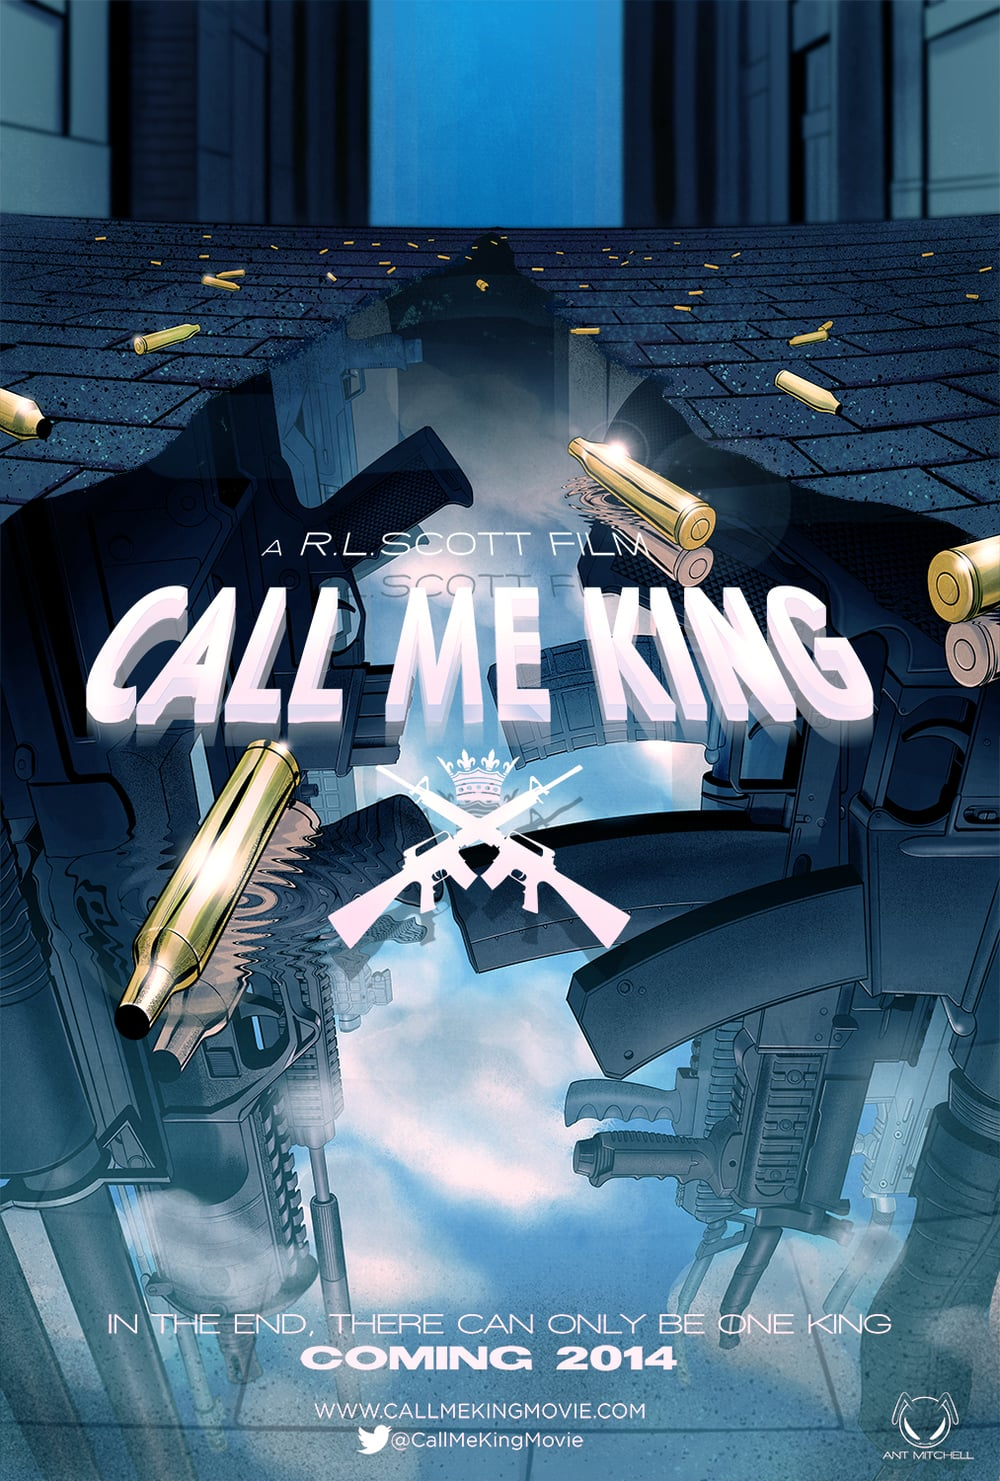 Call Me King Promotional Poster